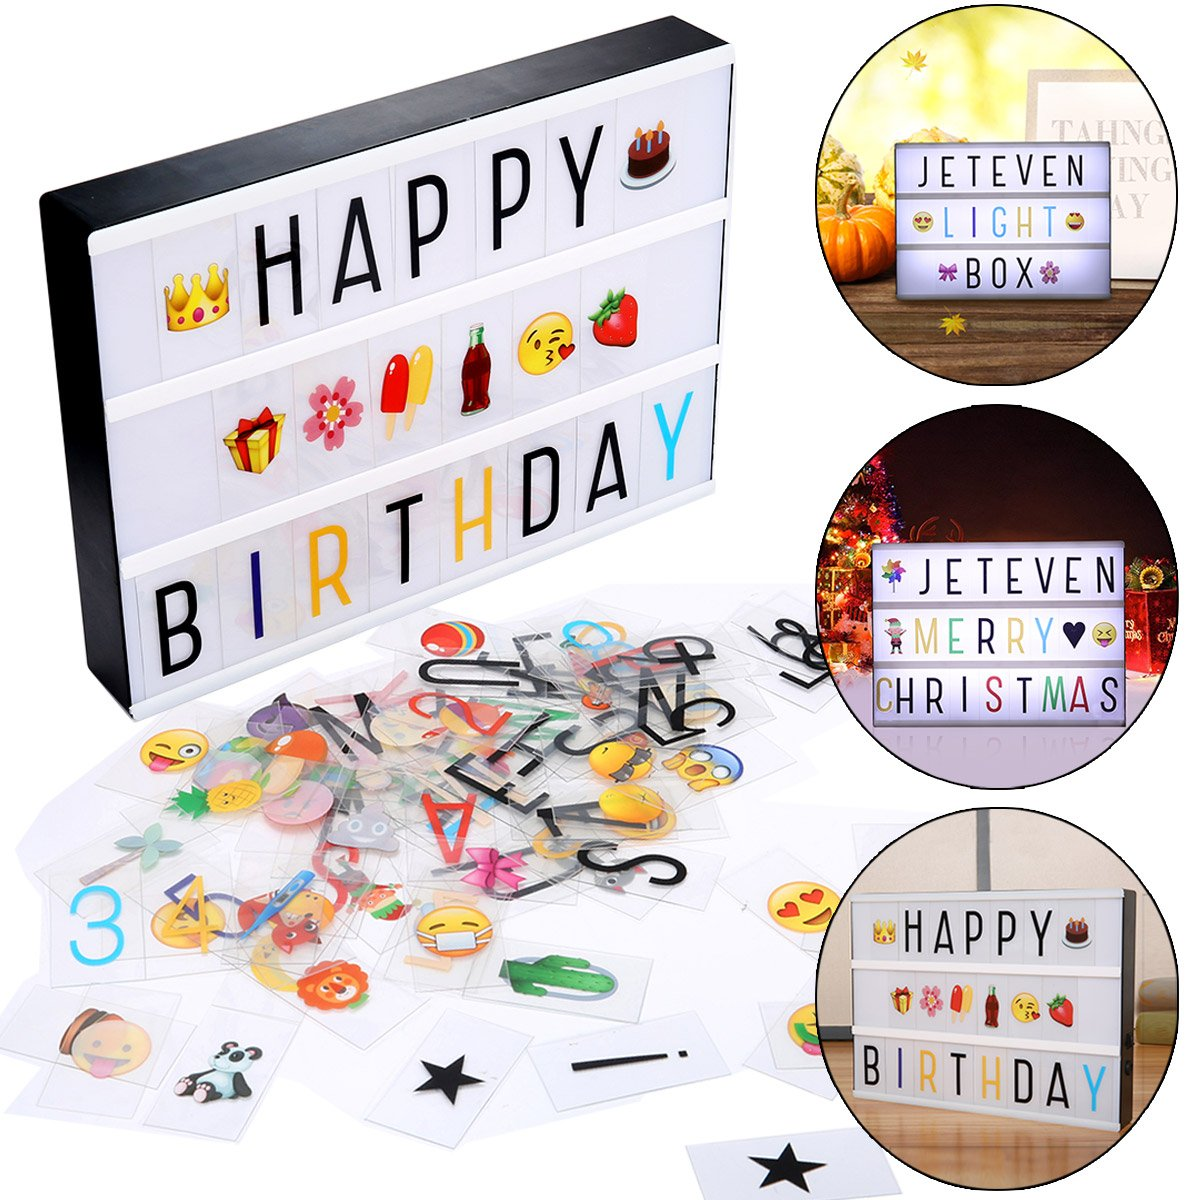 Jeteven Cinema LED Letter Light Box with 210 Letters, Emoji & Numbers, A4 Size Decorative Signs for New Year Valentine's Day Birthday Party, USB/Battery Powered JETEVENLorvsap2796